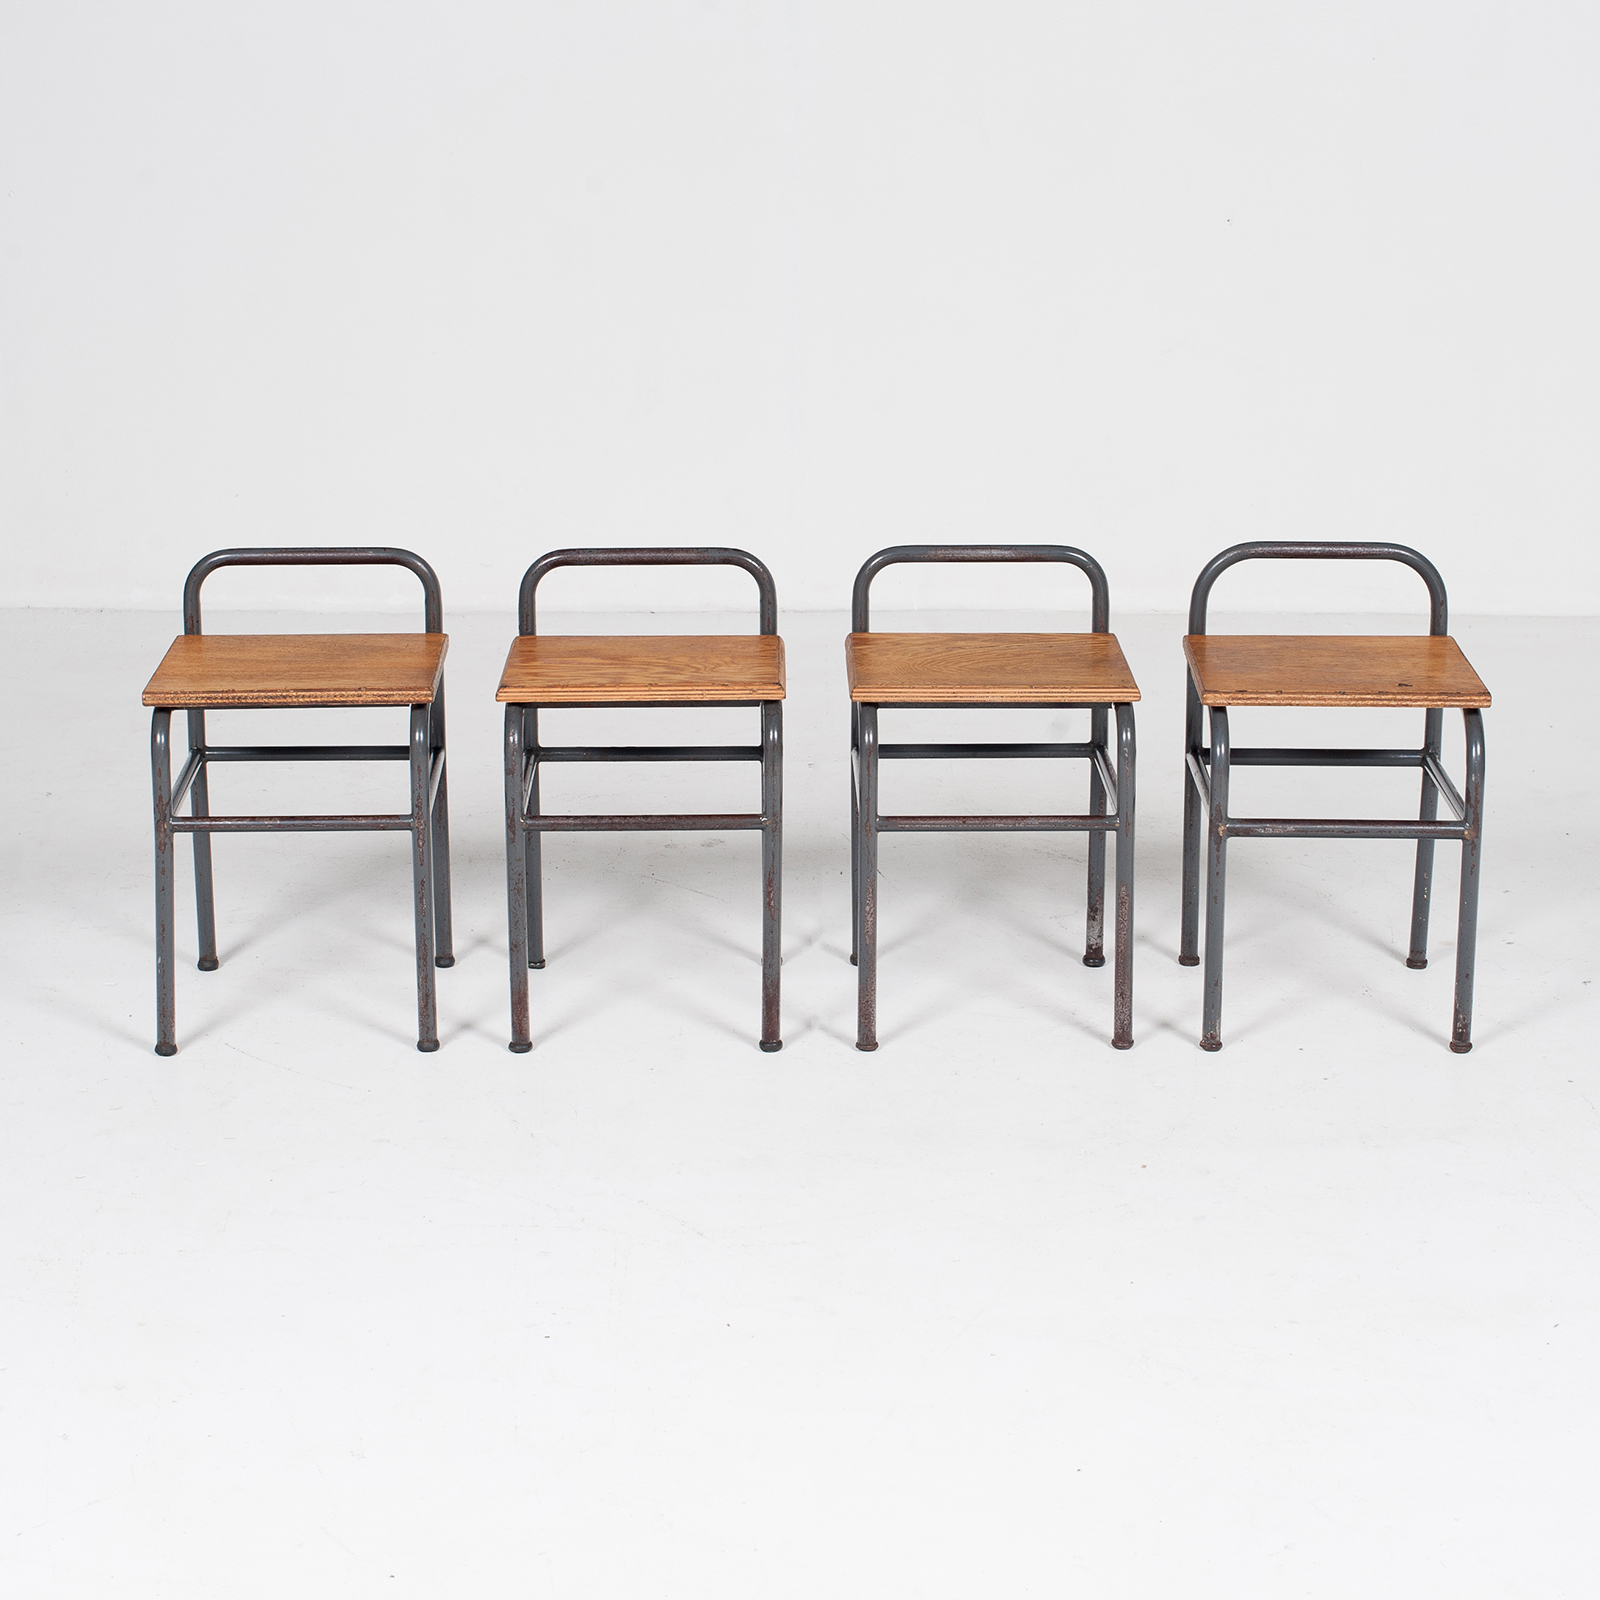 Industrial Stool With Timber Seat, Belgium7